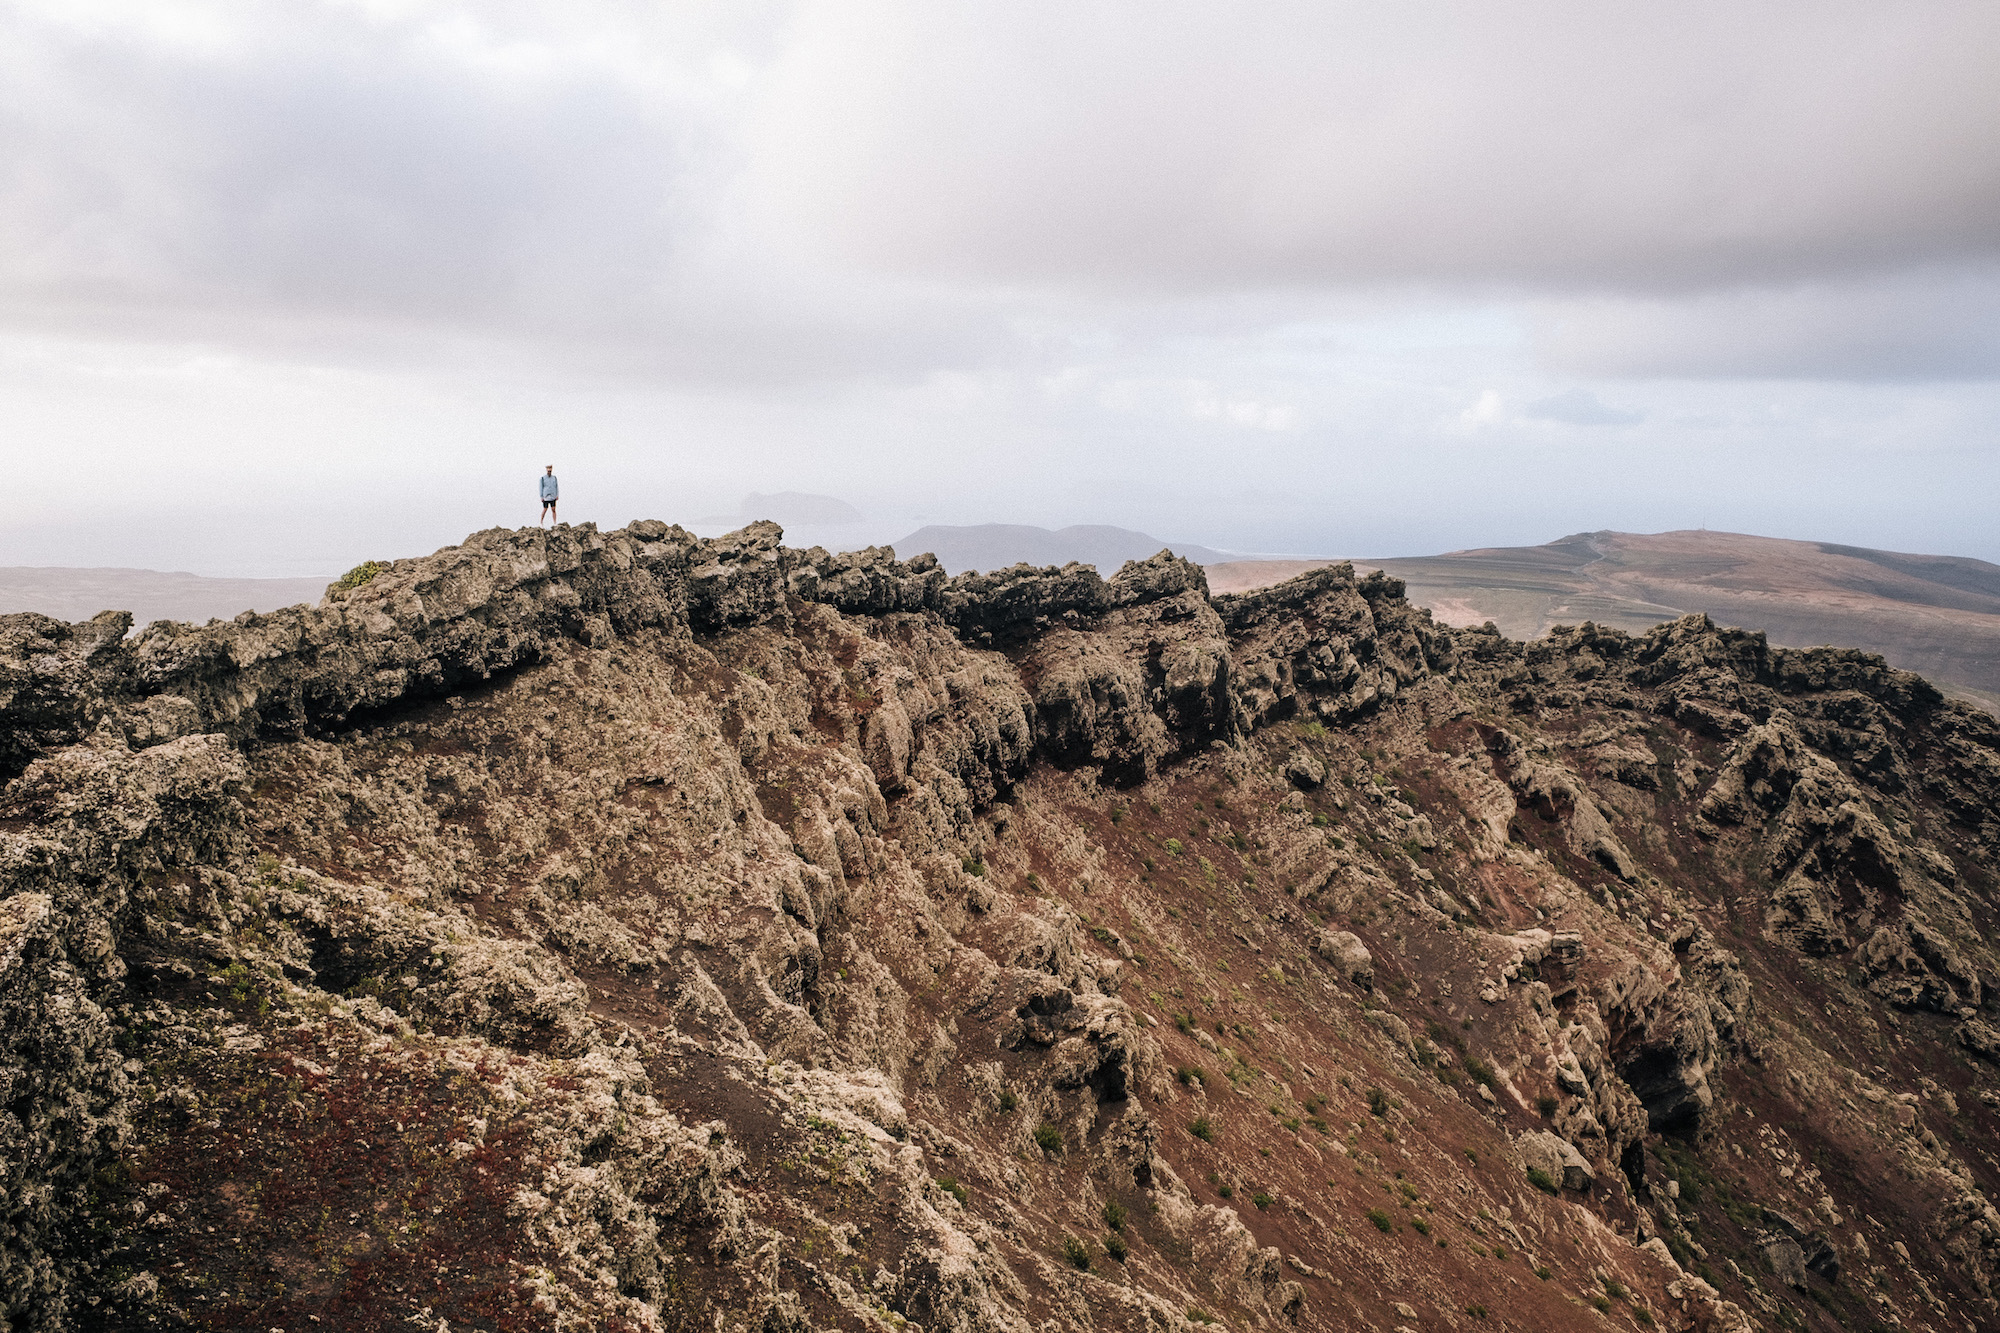 Yé Volcano - As Lanzarote is a volcanic island there are plenty of places to hike up and get great views of the surrounding area. This volcano was accessible from the small town called Yé and after some rather sketchy hiking we made it to the top.